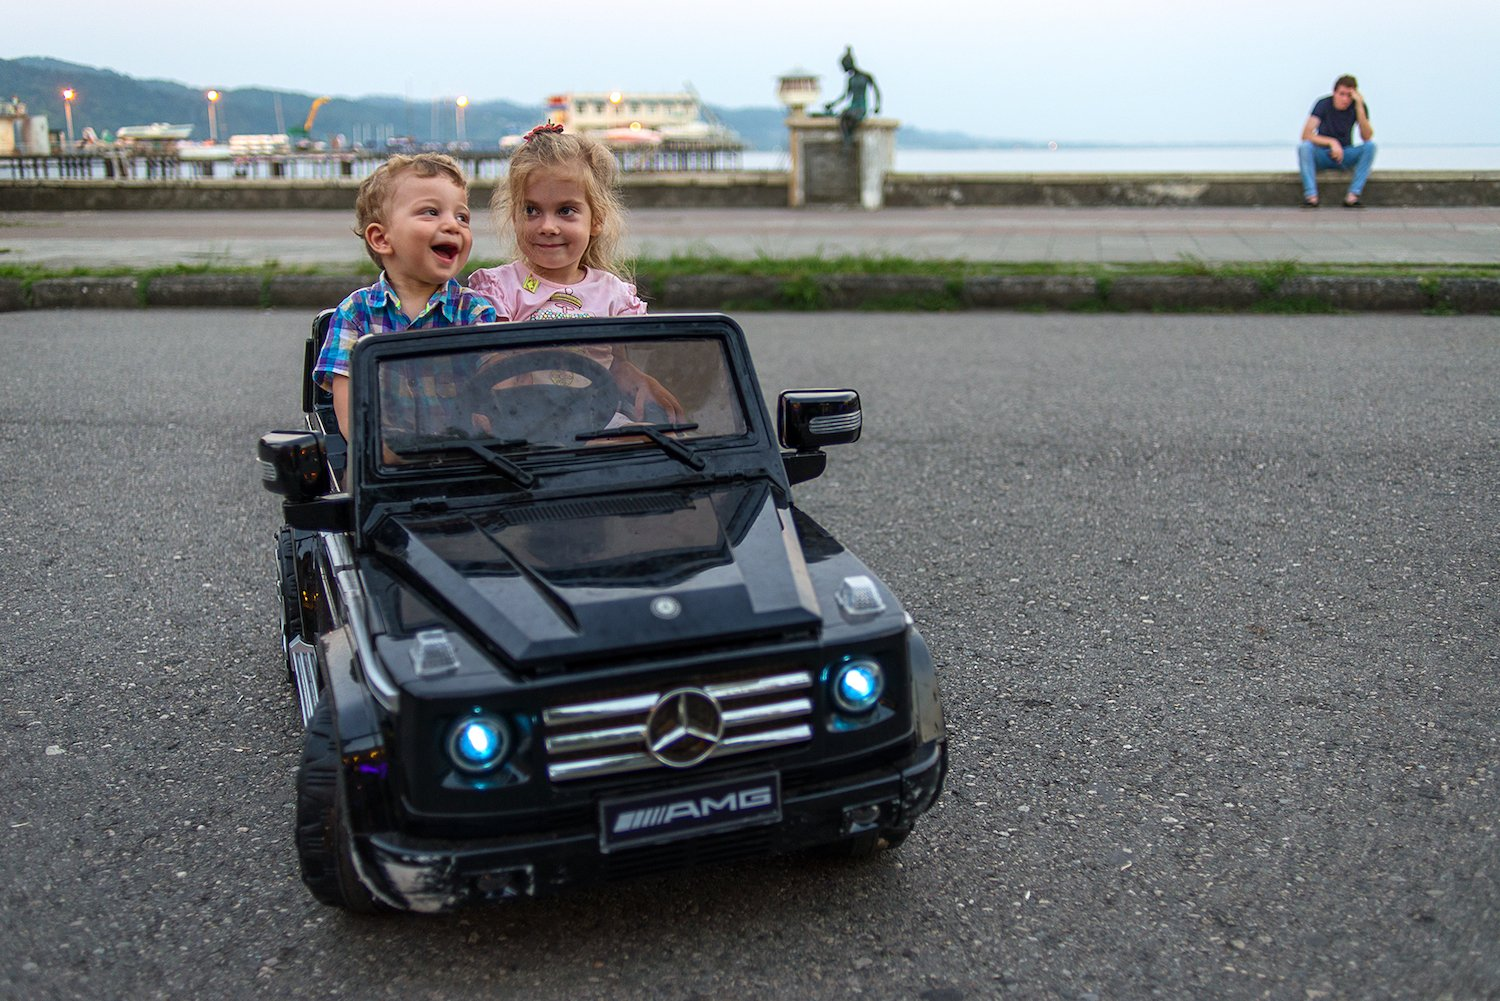 Hot wheels: photographing the luxury cars of the Caucasus, and the kids who drive them